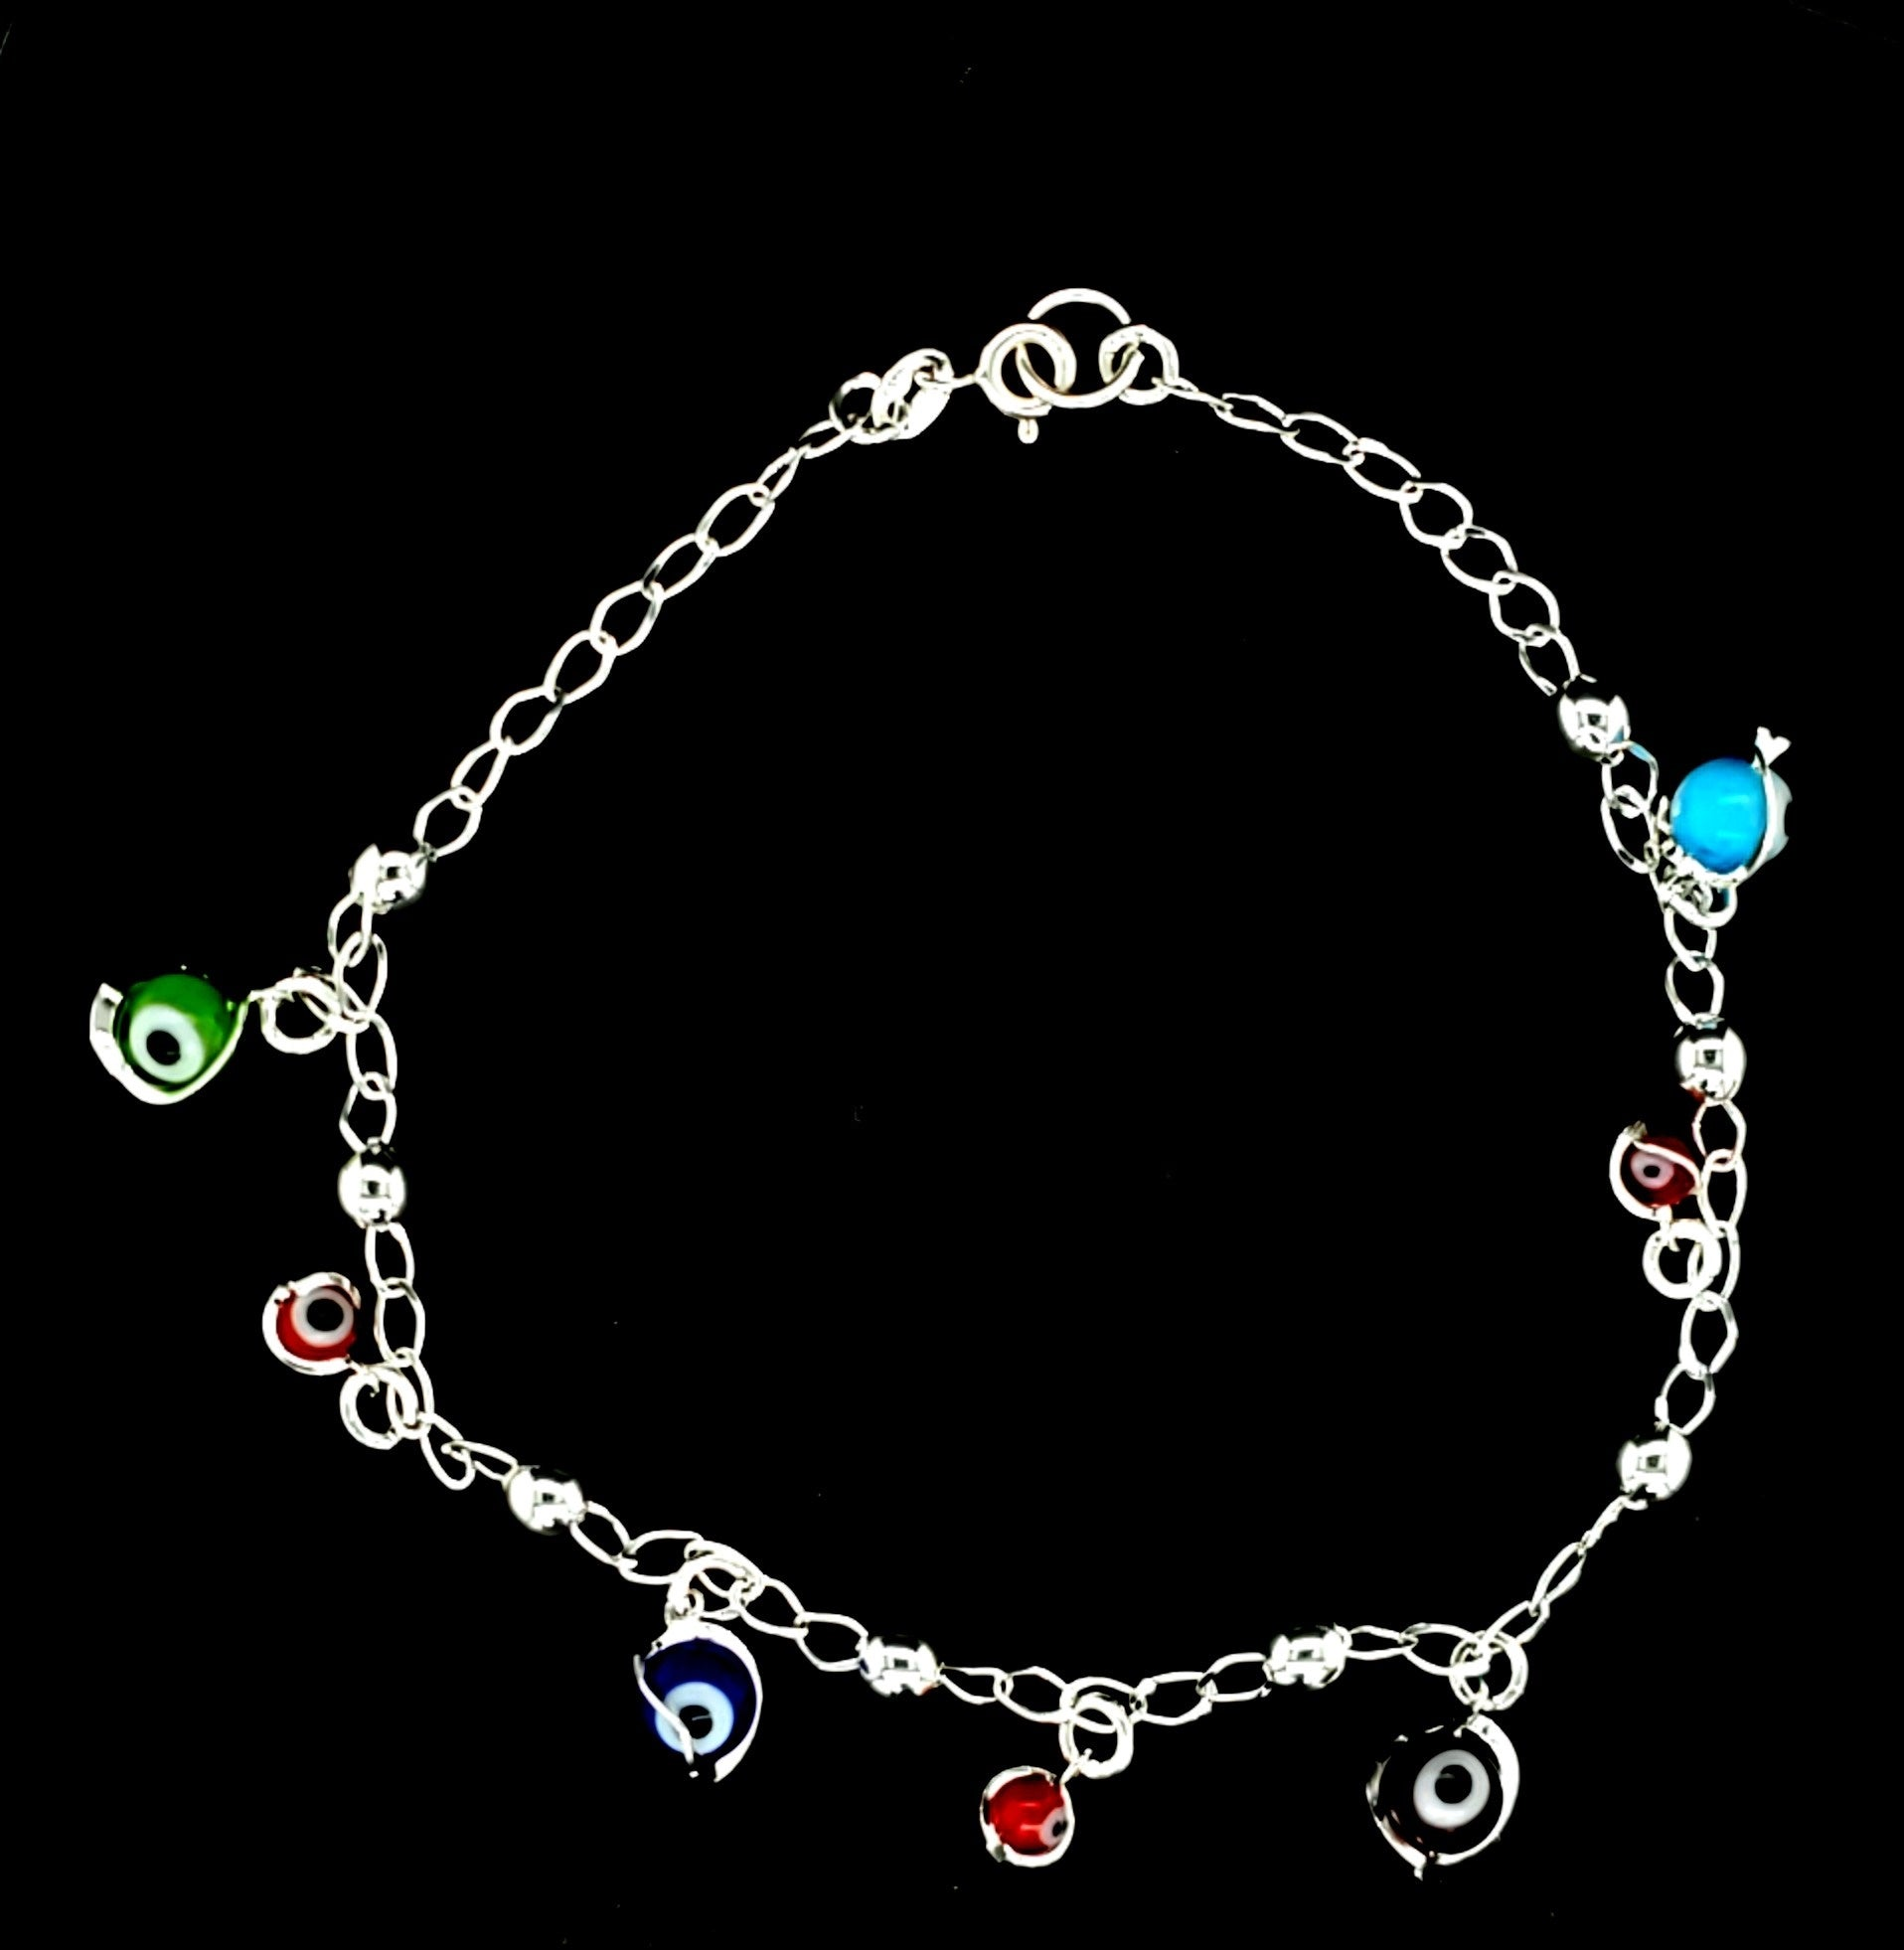 925 Sterling Silver (Made in Italy) Solid Evil Eye Bracelet for Women-gift for her 9.5""